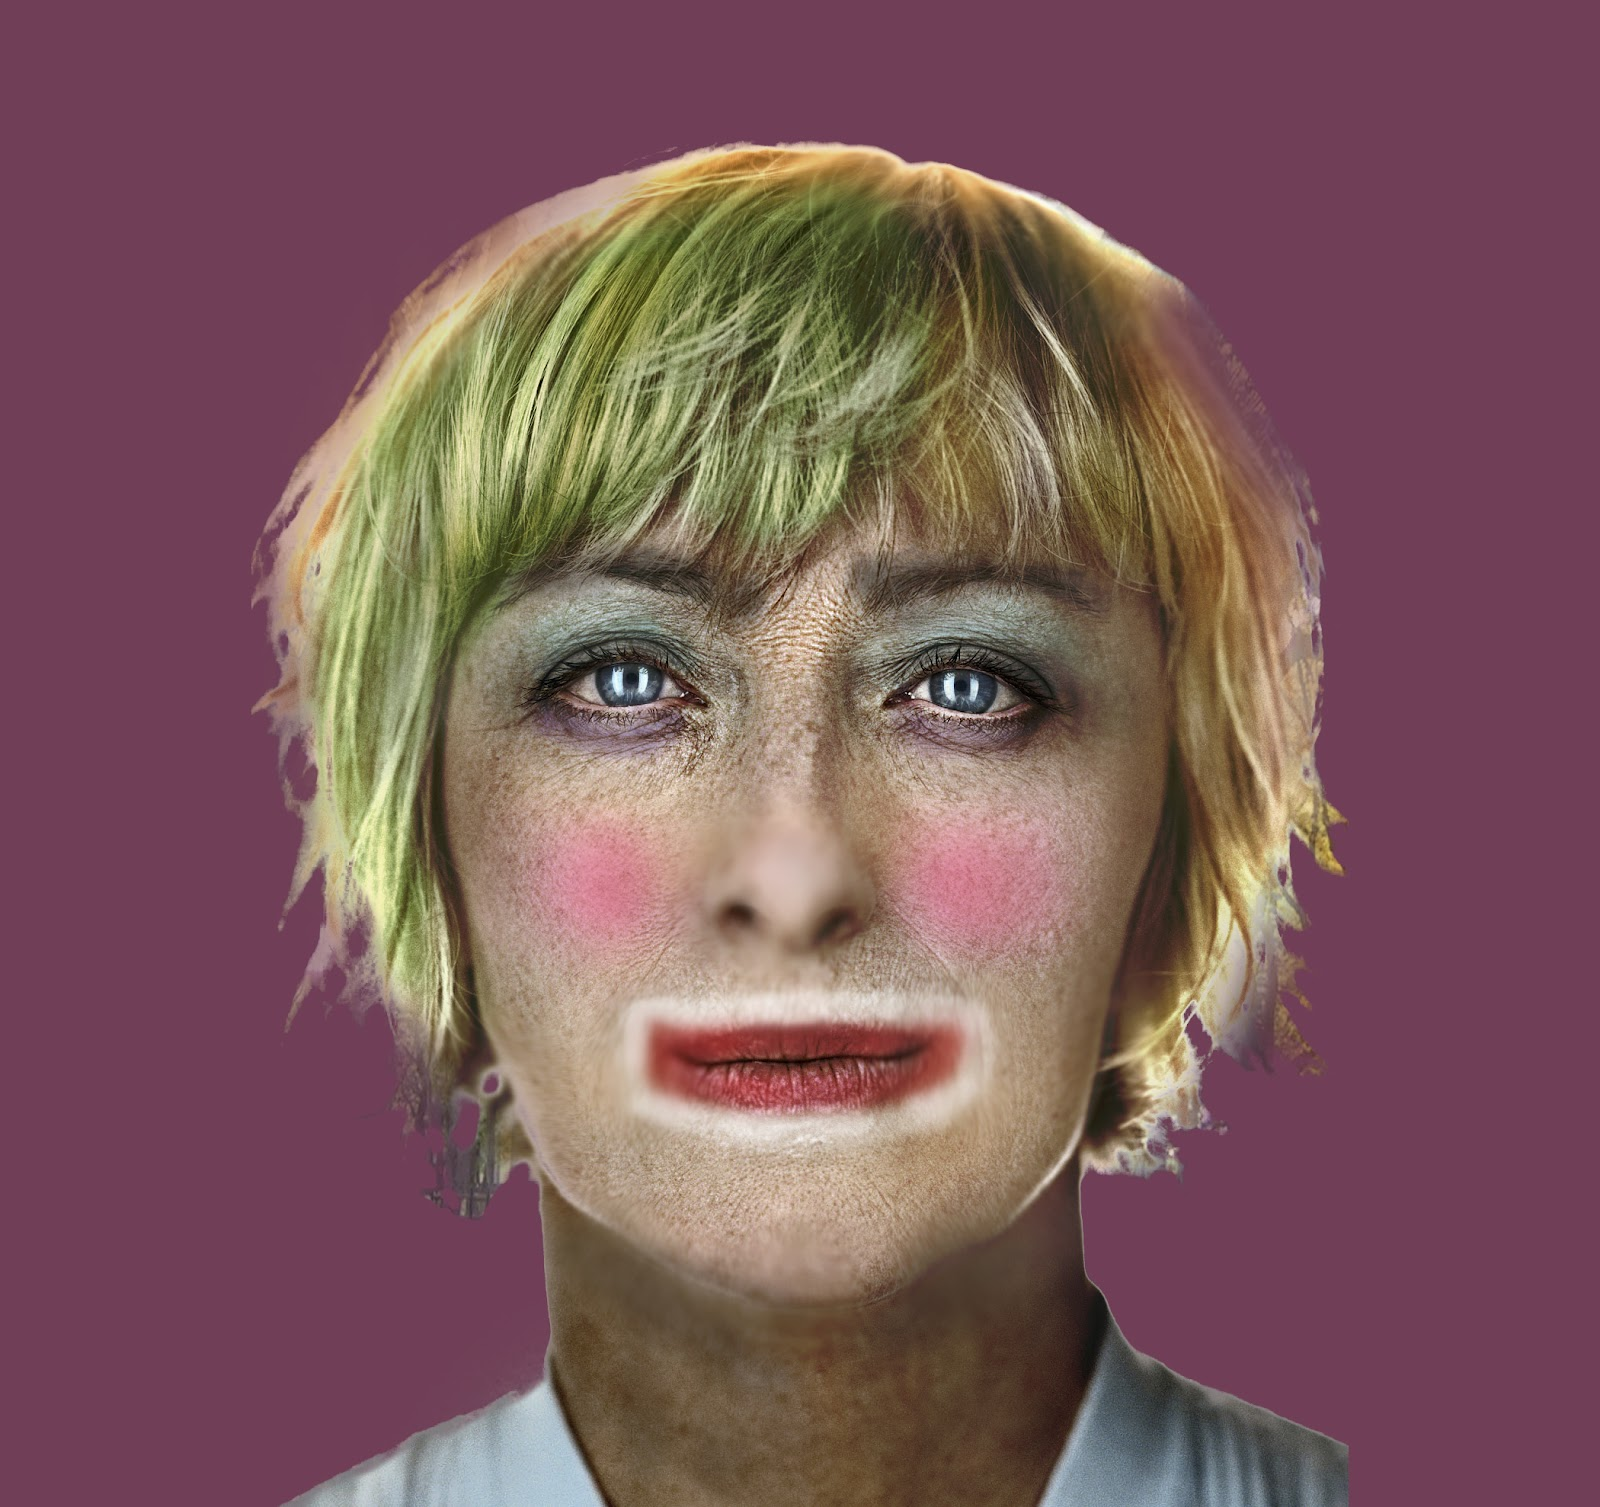 Cindy Sherman Clowns Cindy sherman clownedCindy Sherman Centrefolds